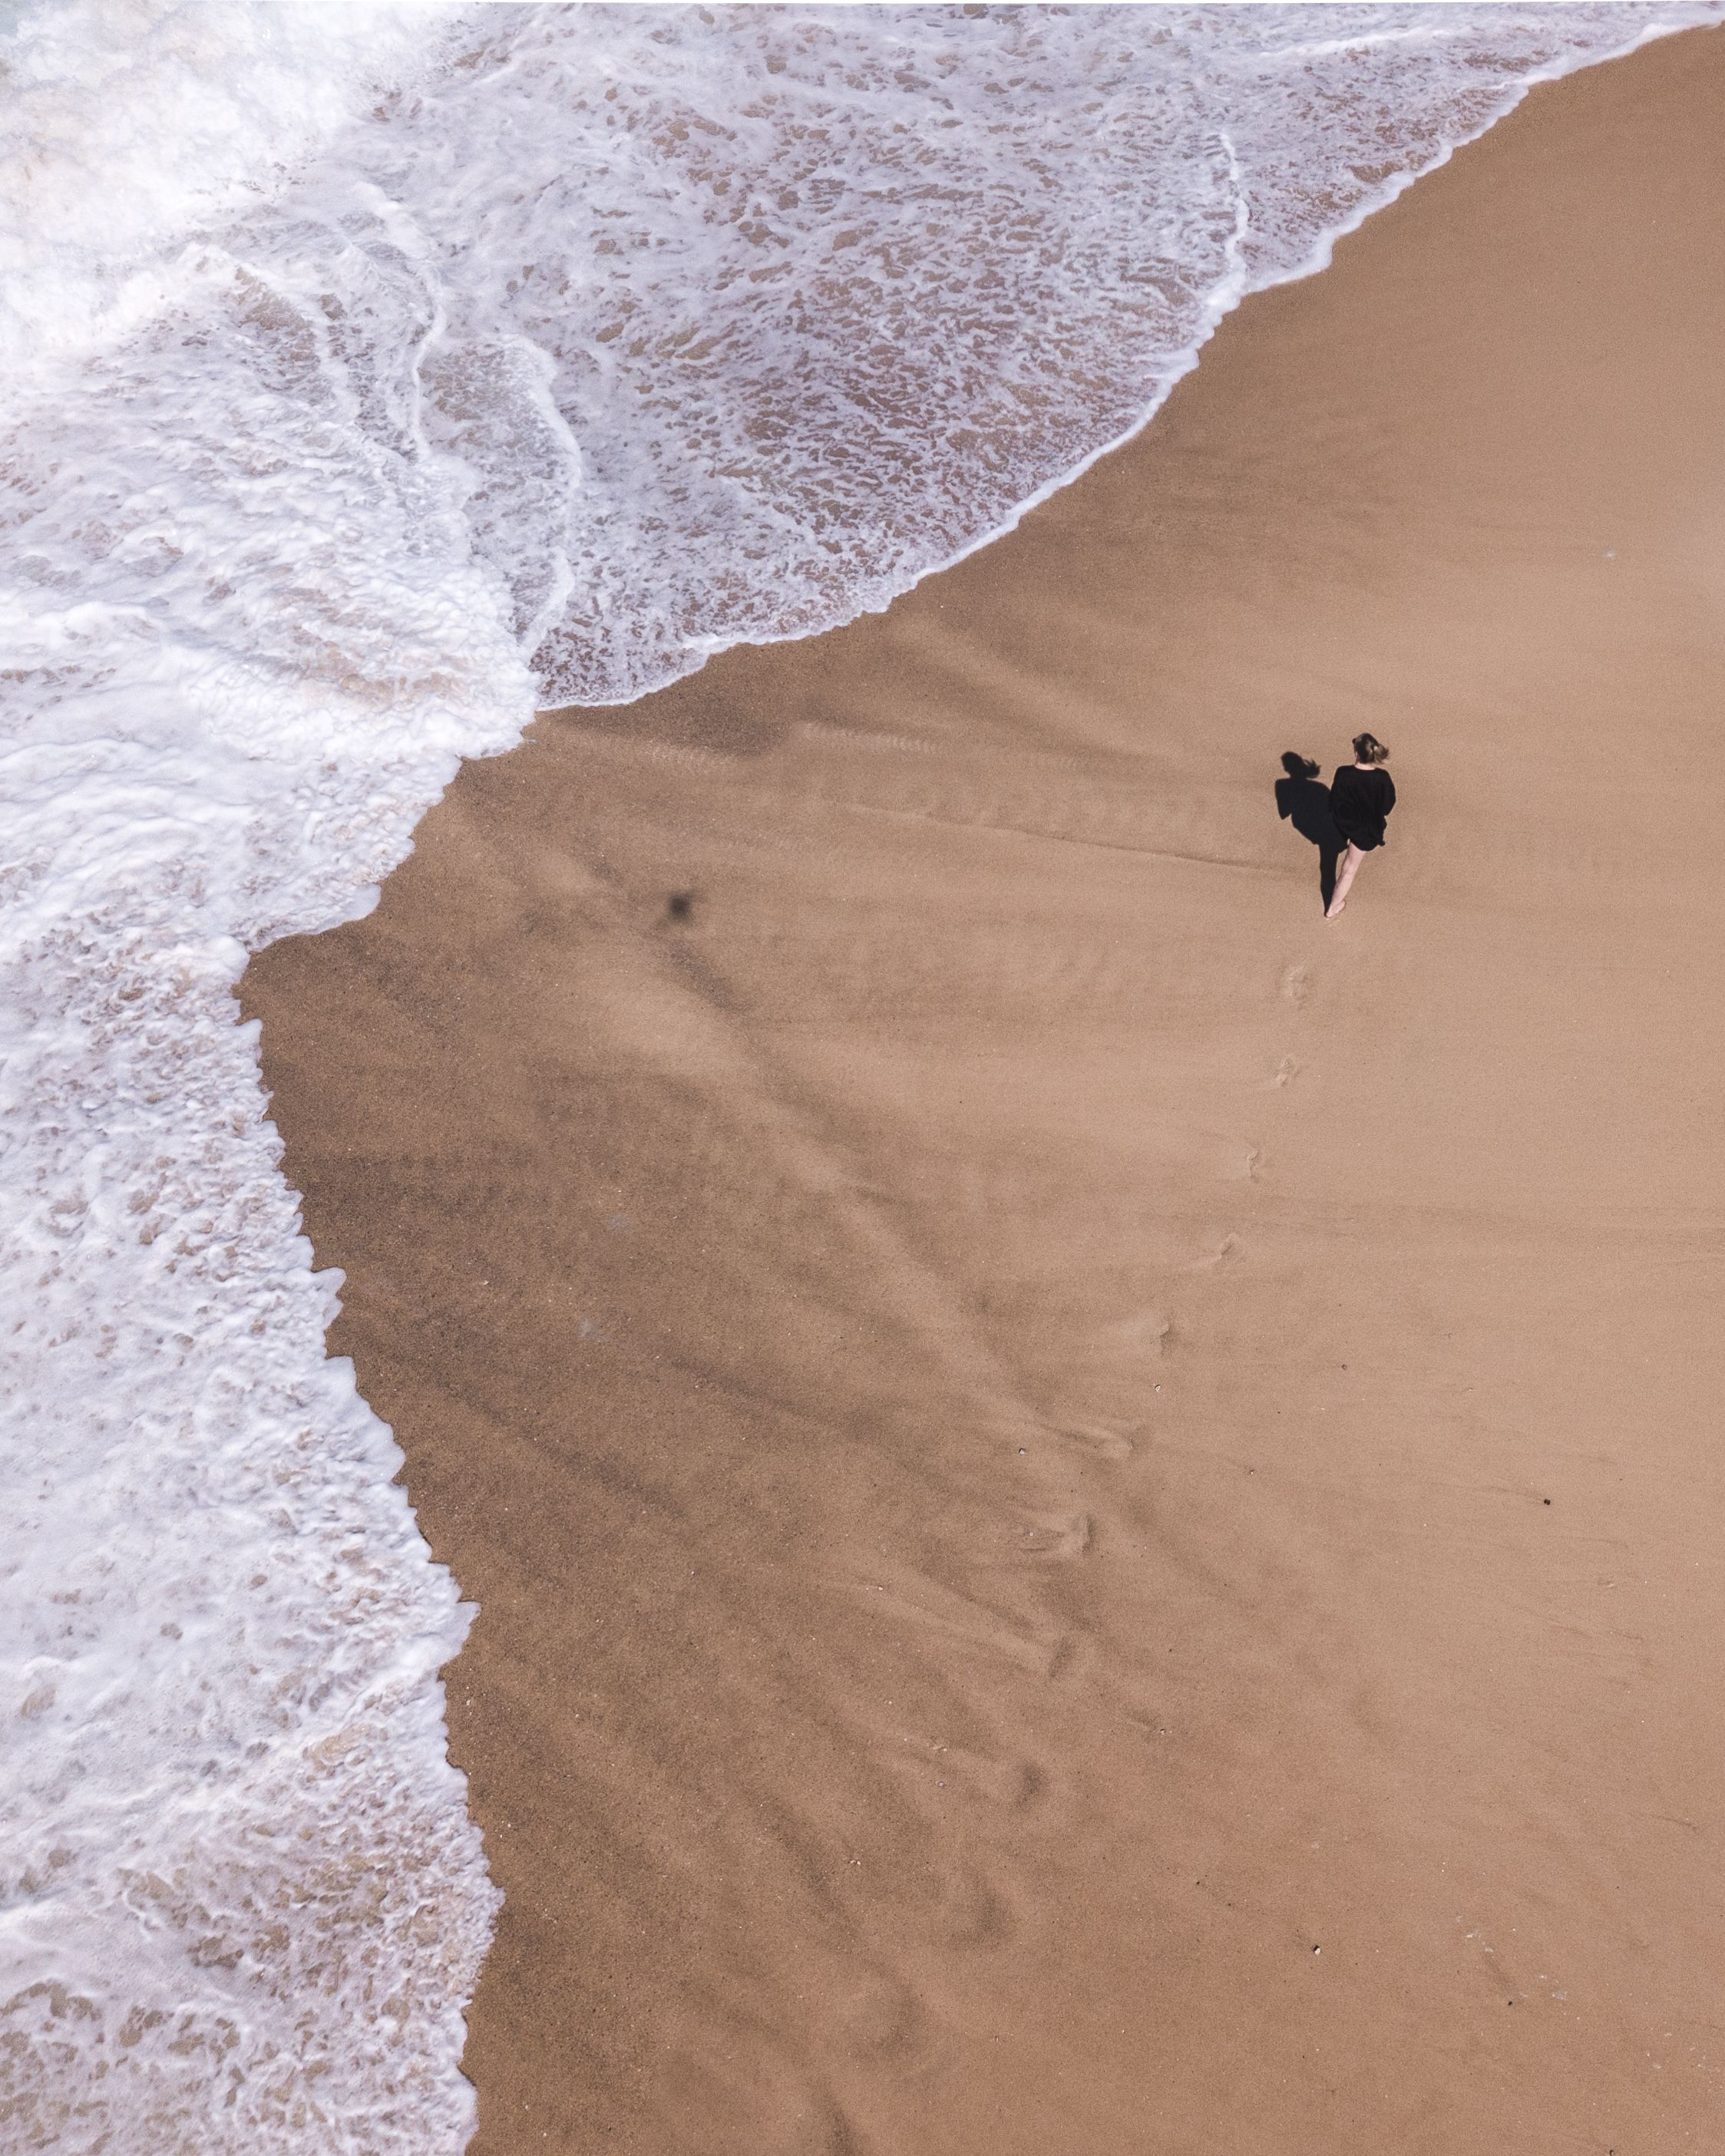 Drone Shot Of Woman Walking On A Beach Drone Photos Photo Video Mockup